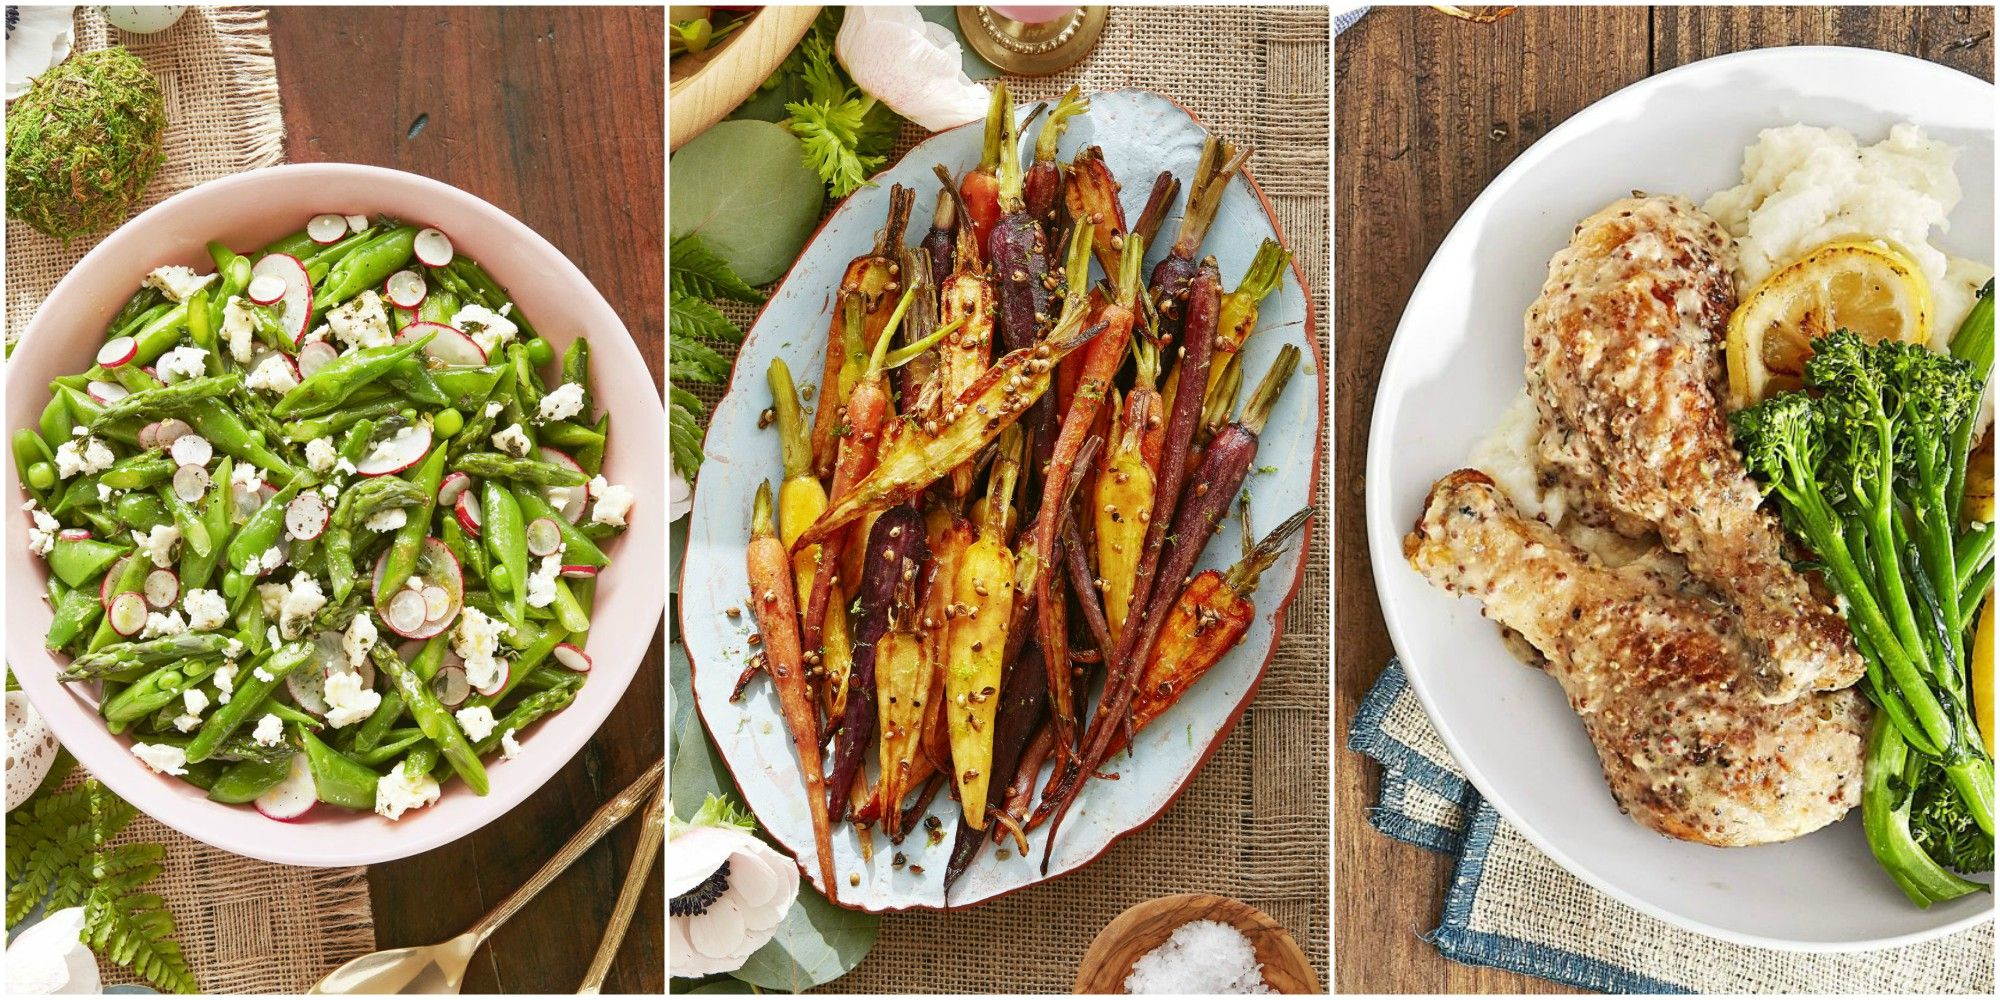 74 Easter Dinner Recipes & Food Ideas - Easter Menu - Country Living